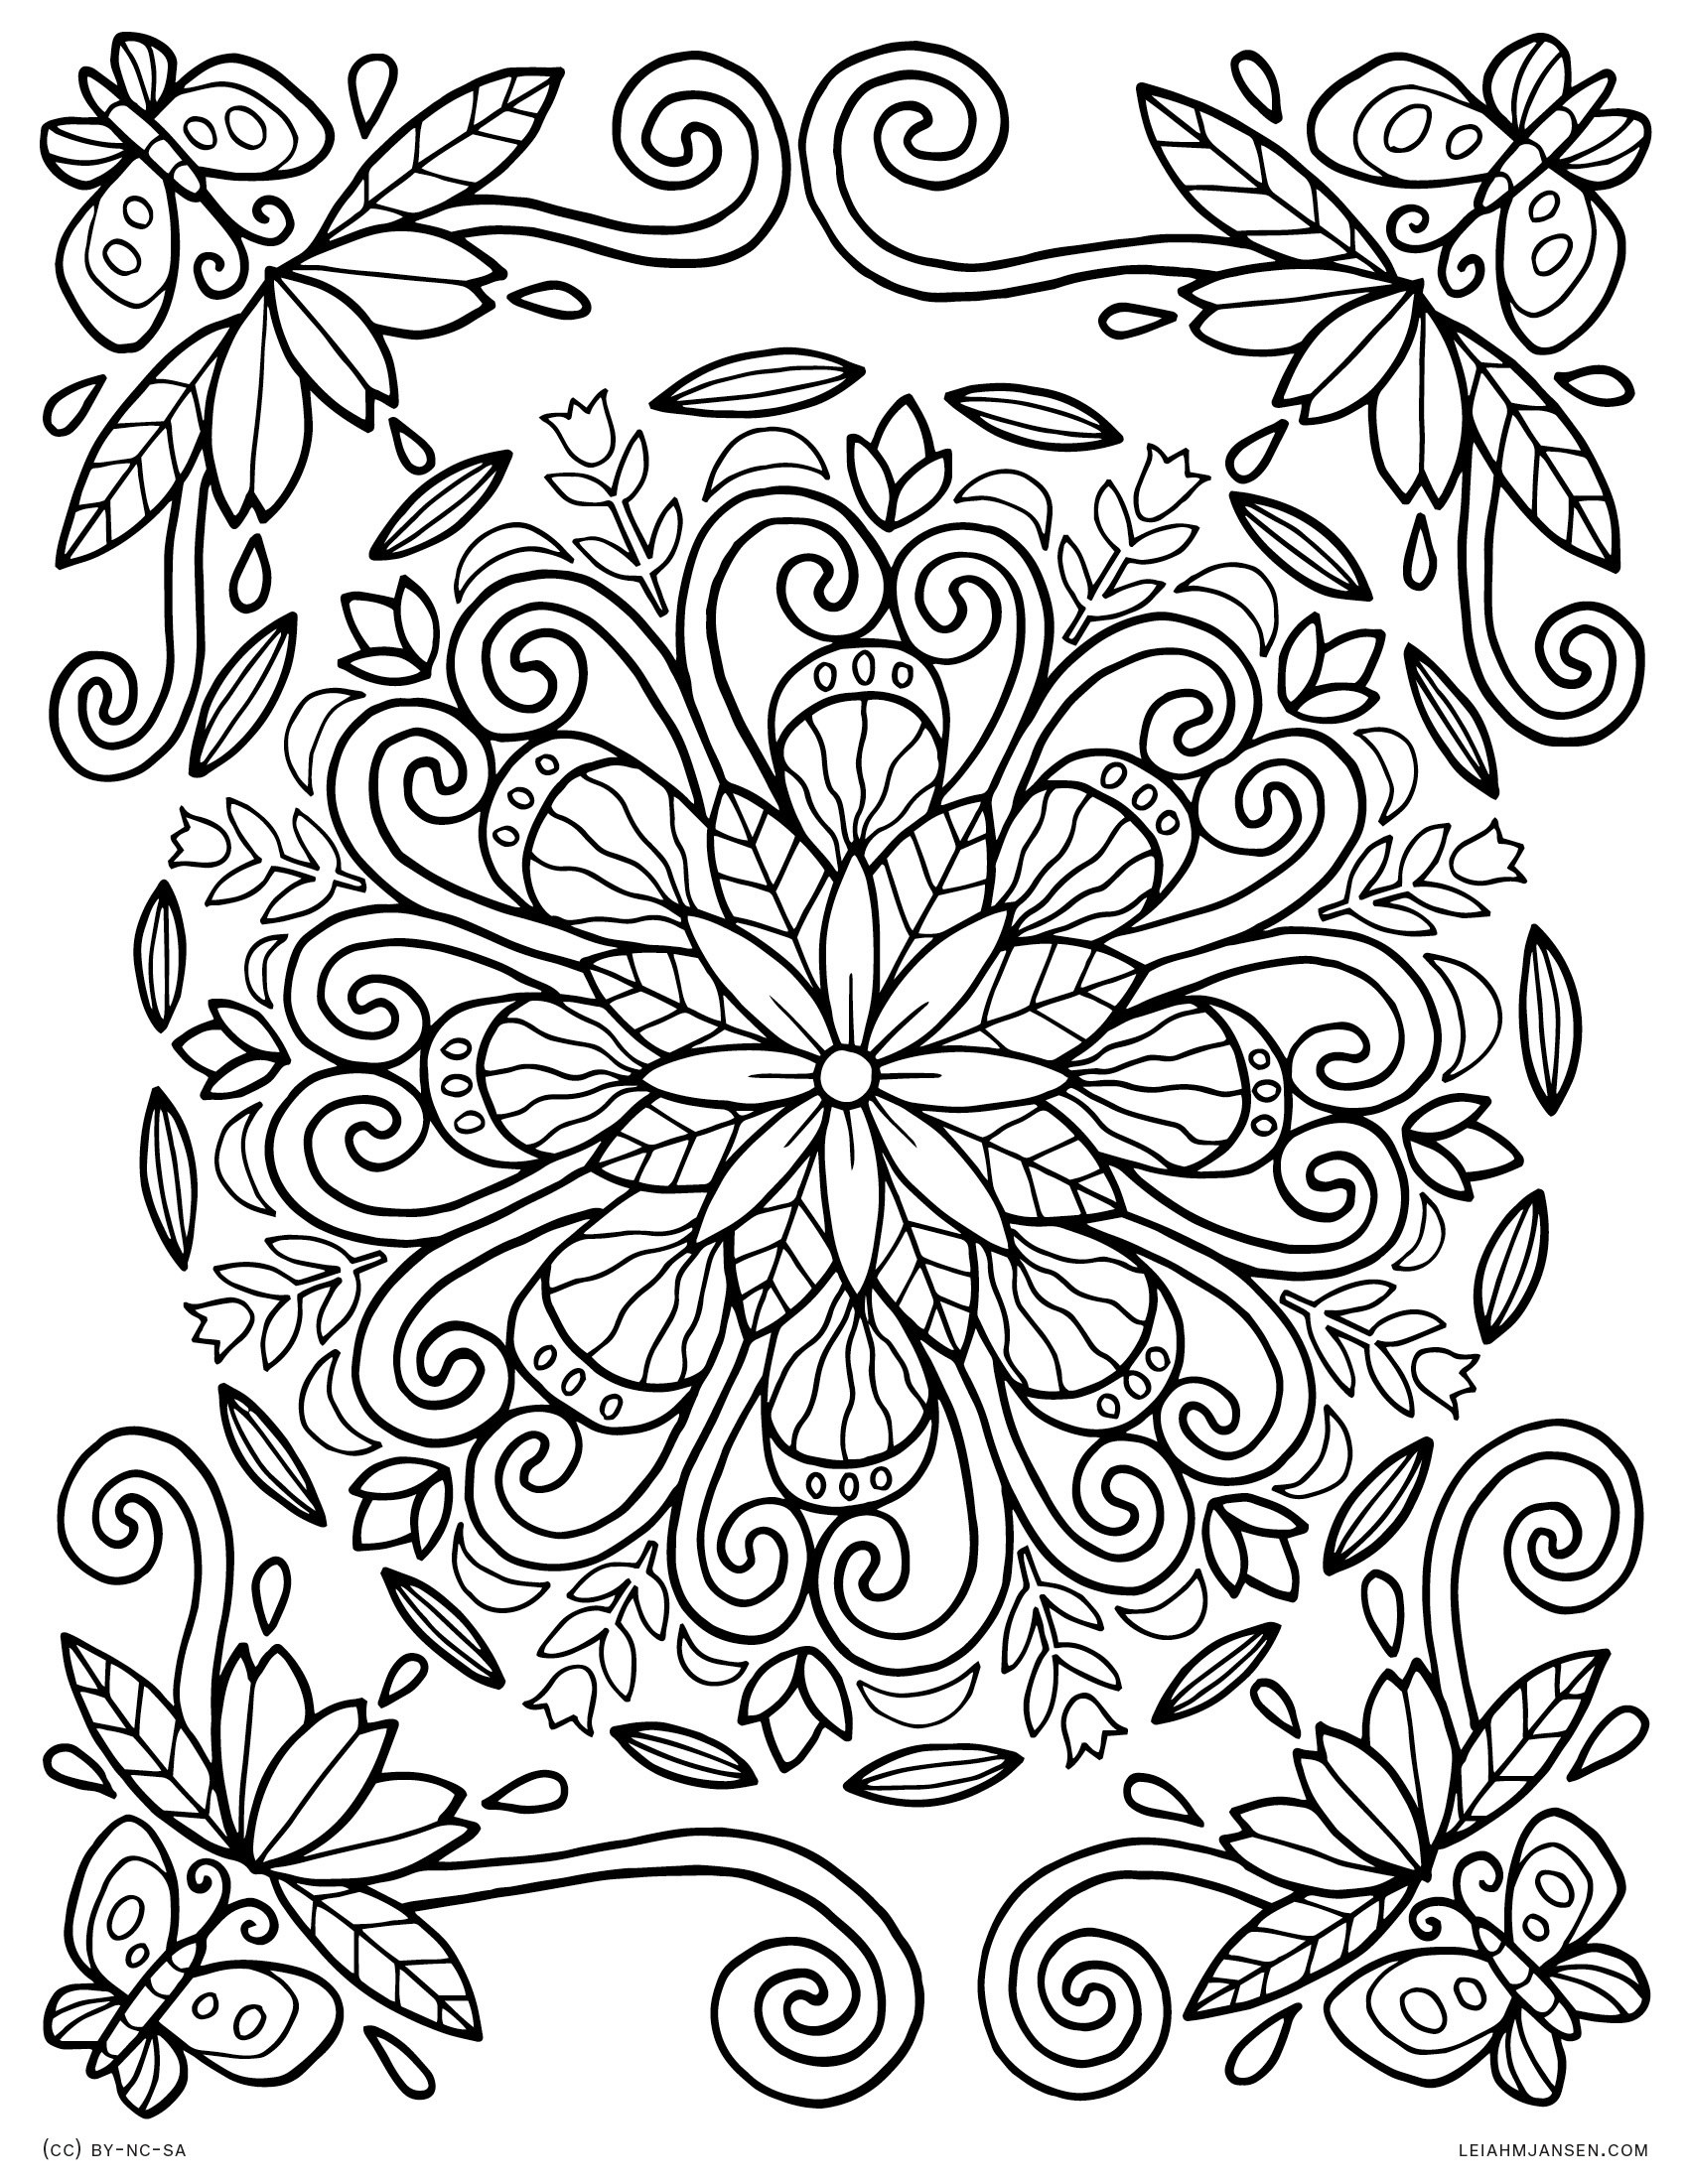 Coloring Pages - Free Printable Spring Pictures To Color